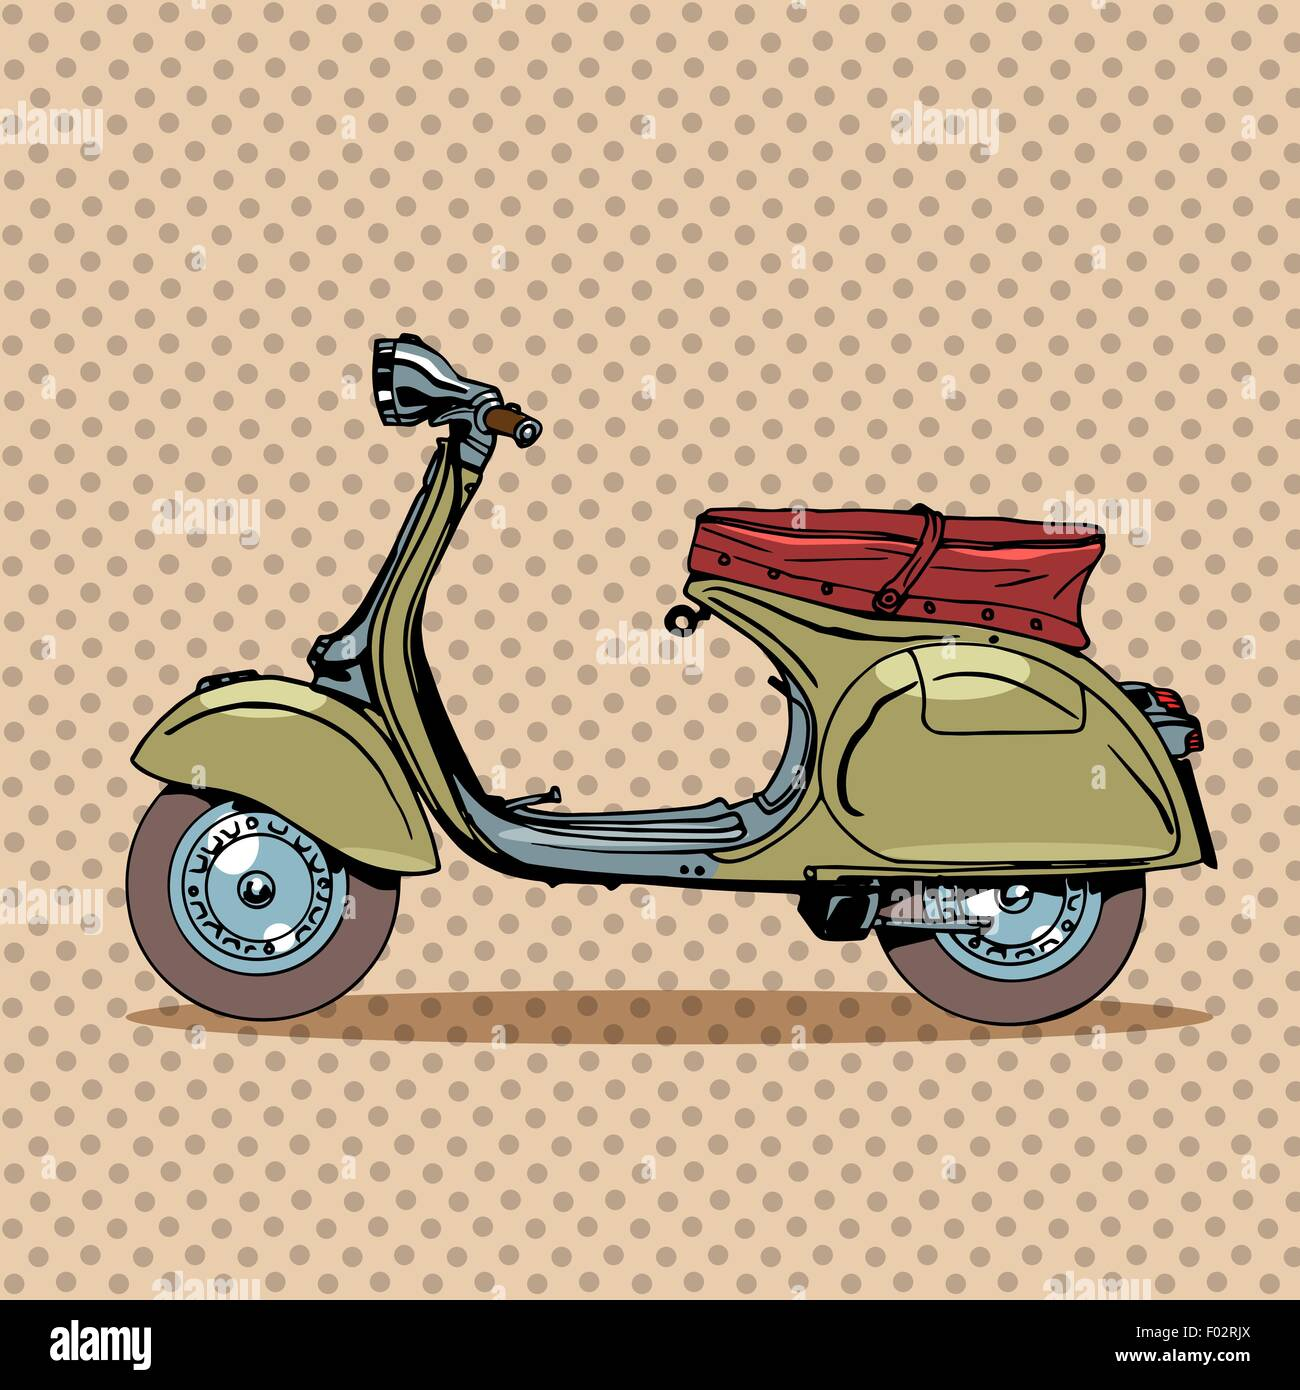 Vintage scooter retro transport - Stock Image